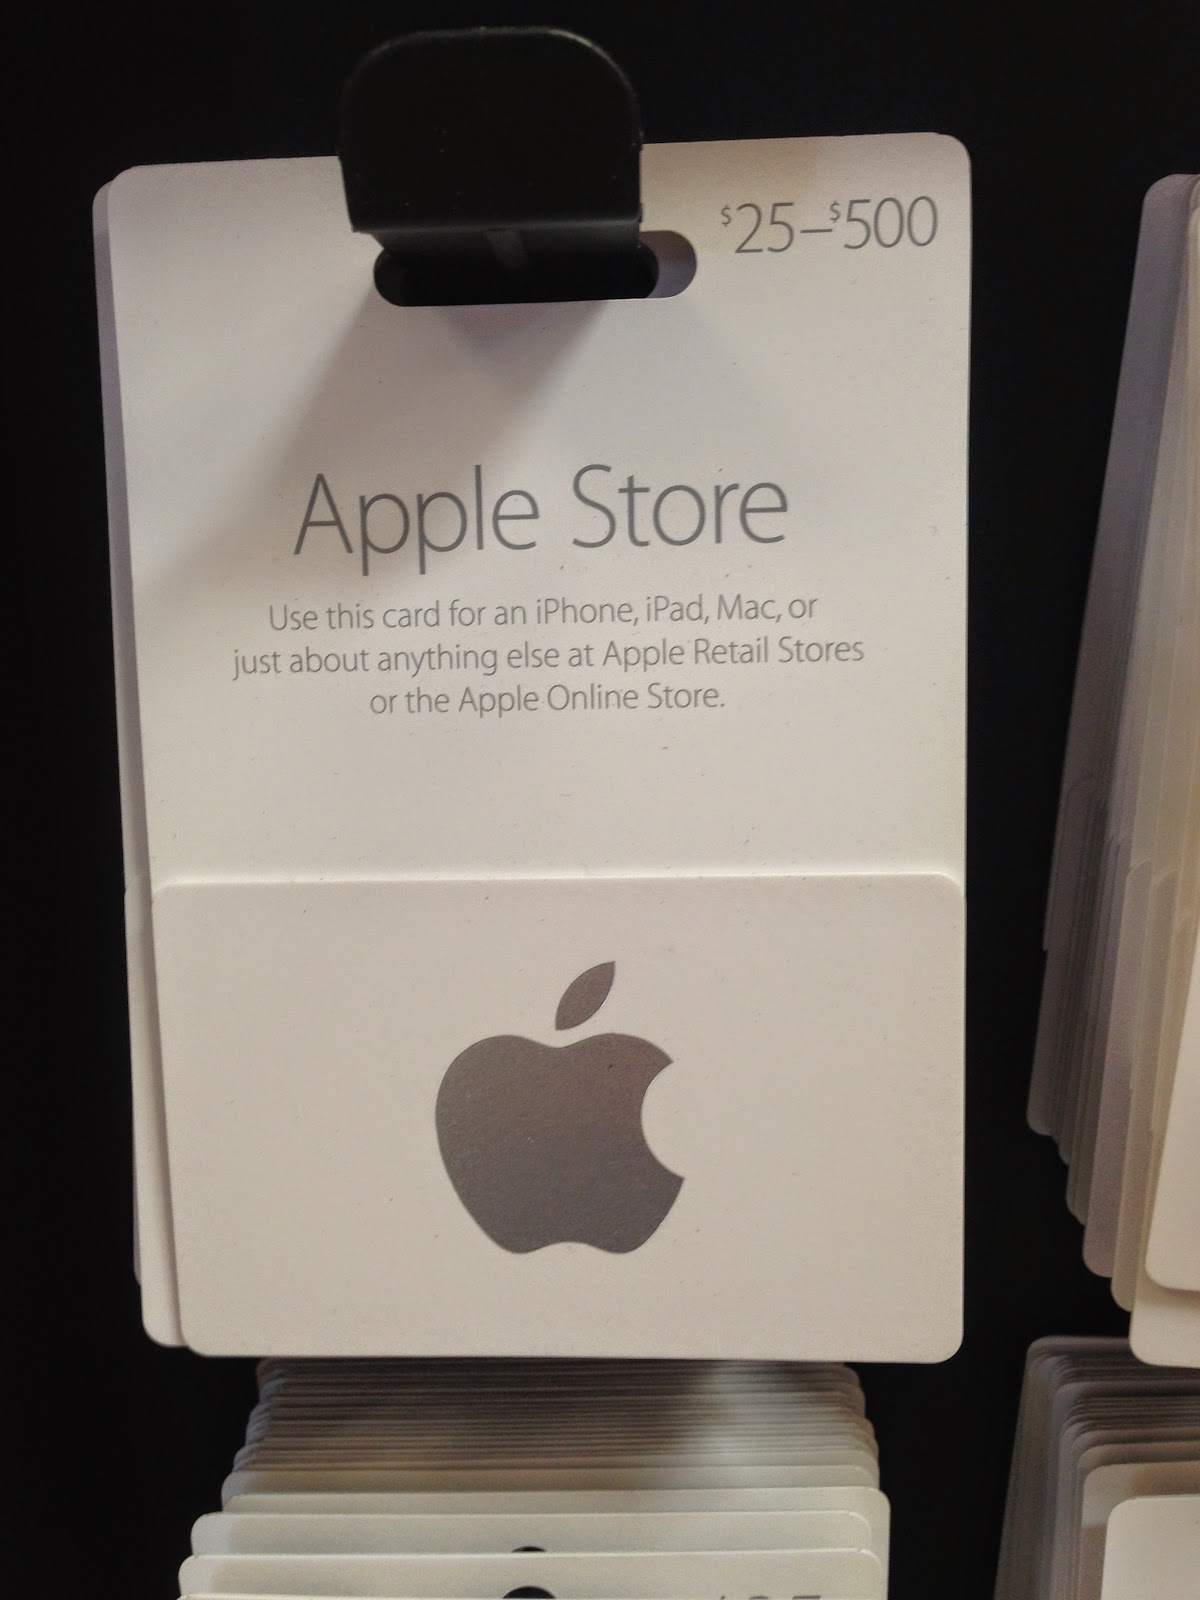 tech talk 4 geeks apple store gift cards based on iphone colors. Black Bedroom Furniture Sets. Home Design Ideas